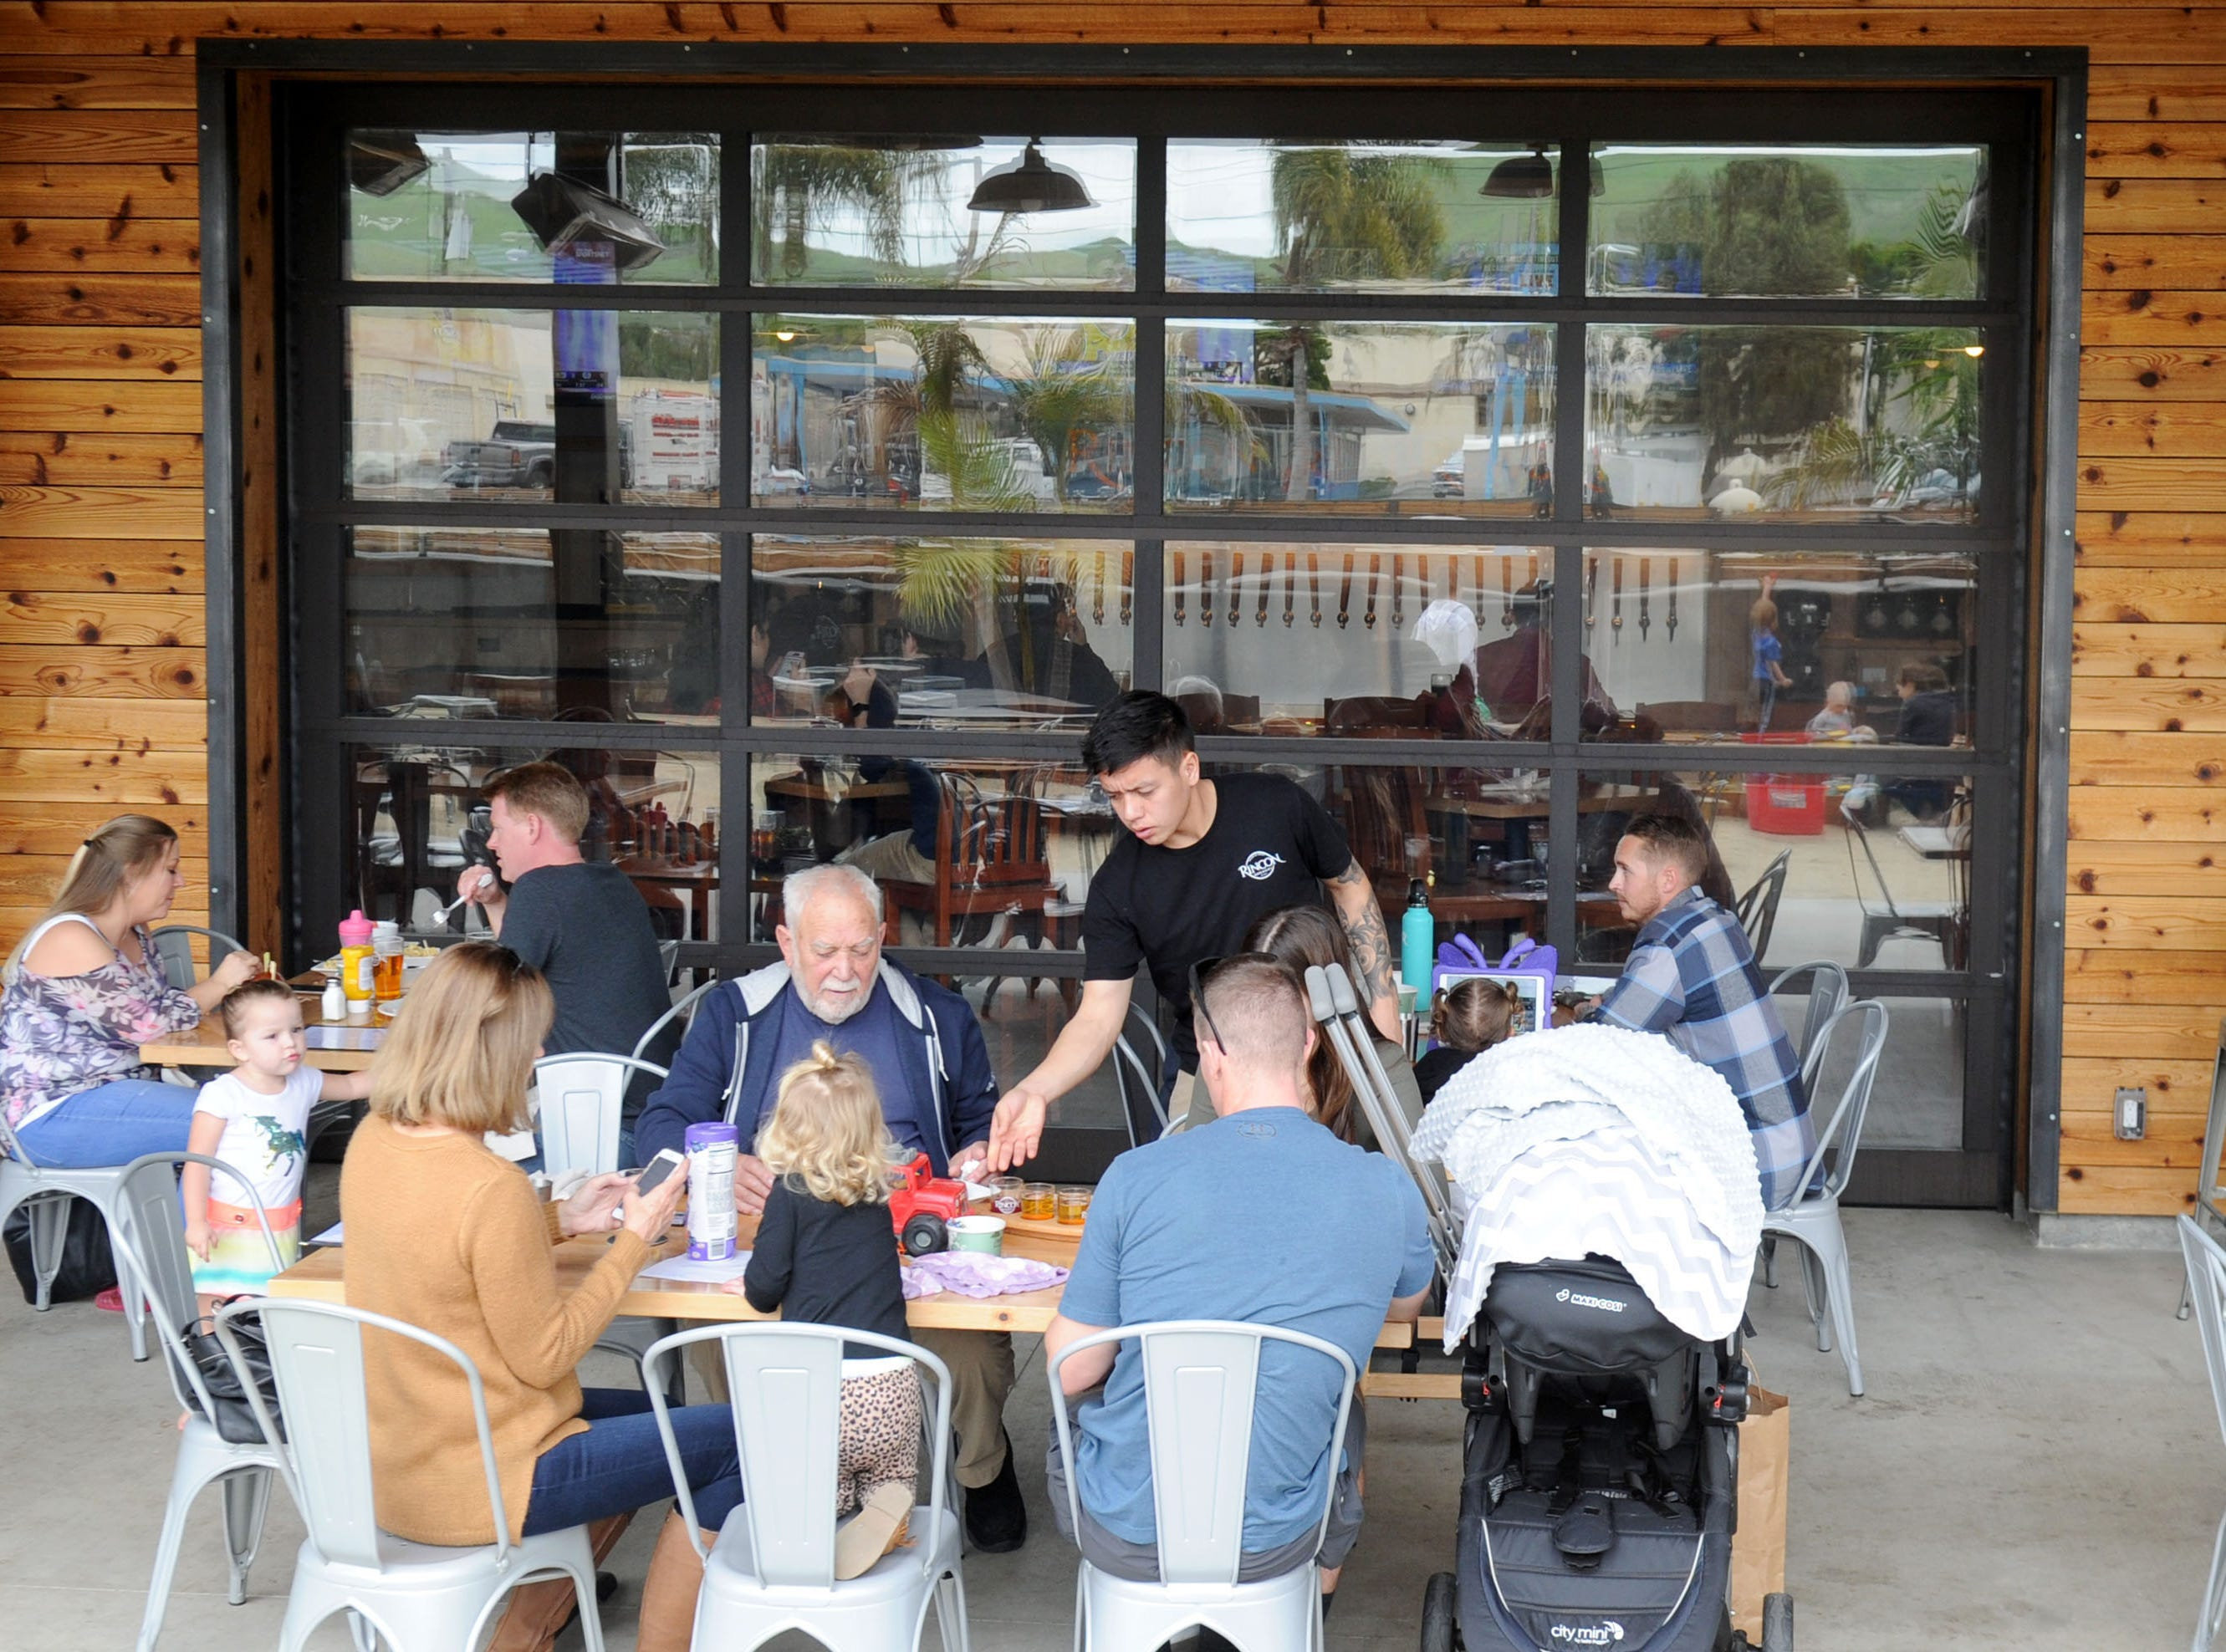 A group of people eat outside in the patio area of the Rincon Brewery in Ventura.